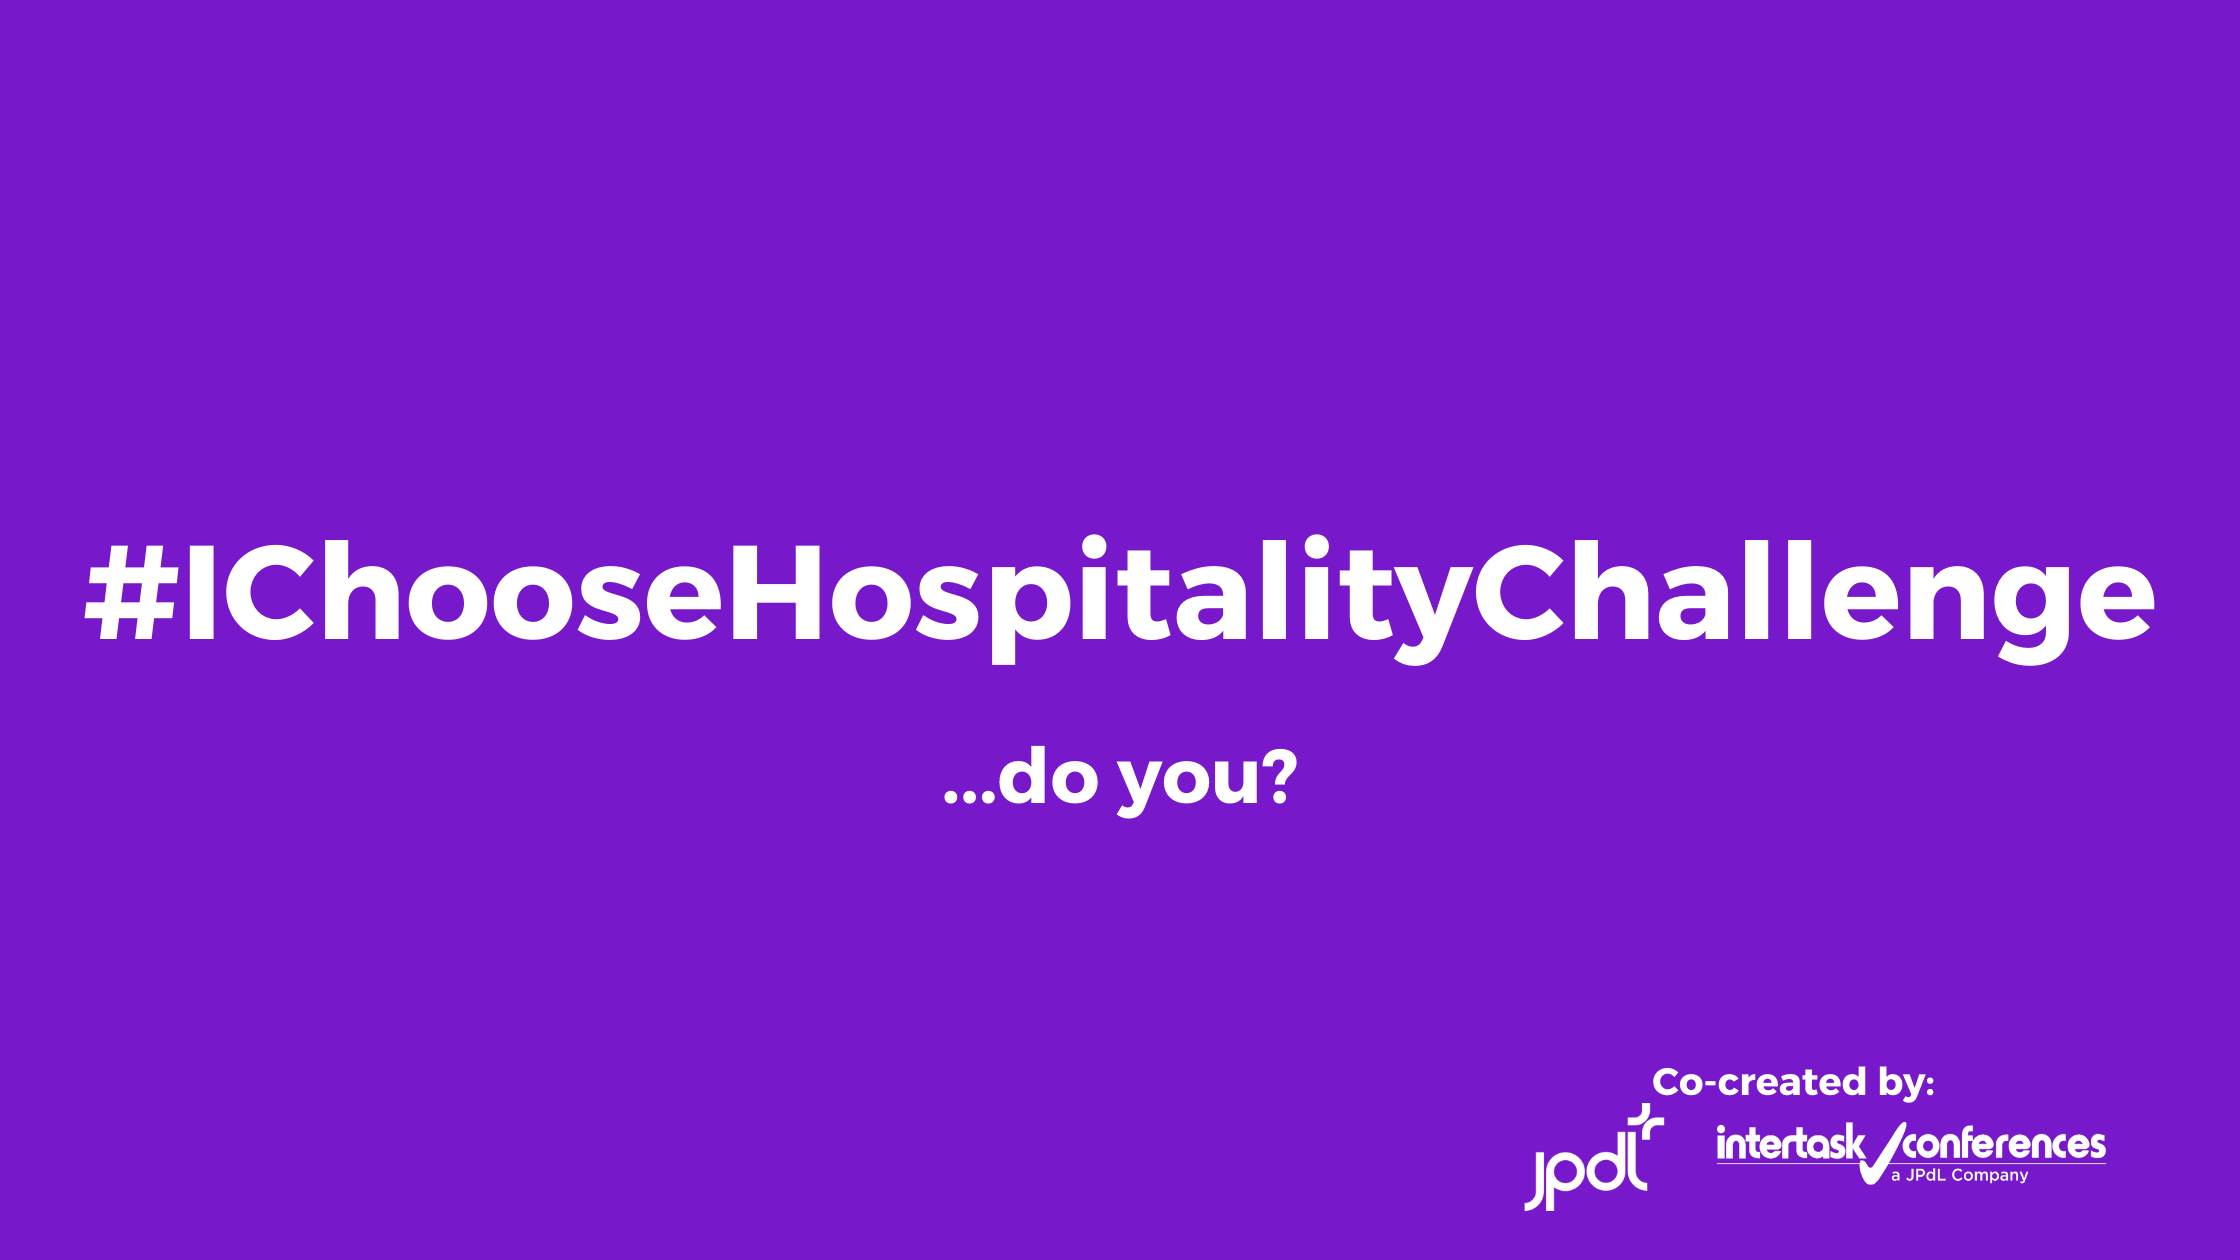 We Want to Hear from You: #IChooseHospitality Challenge